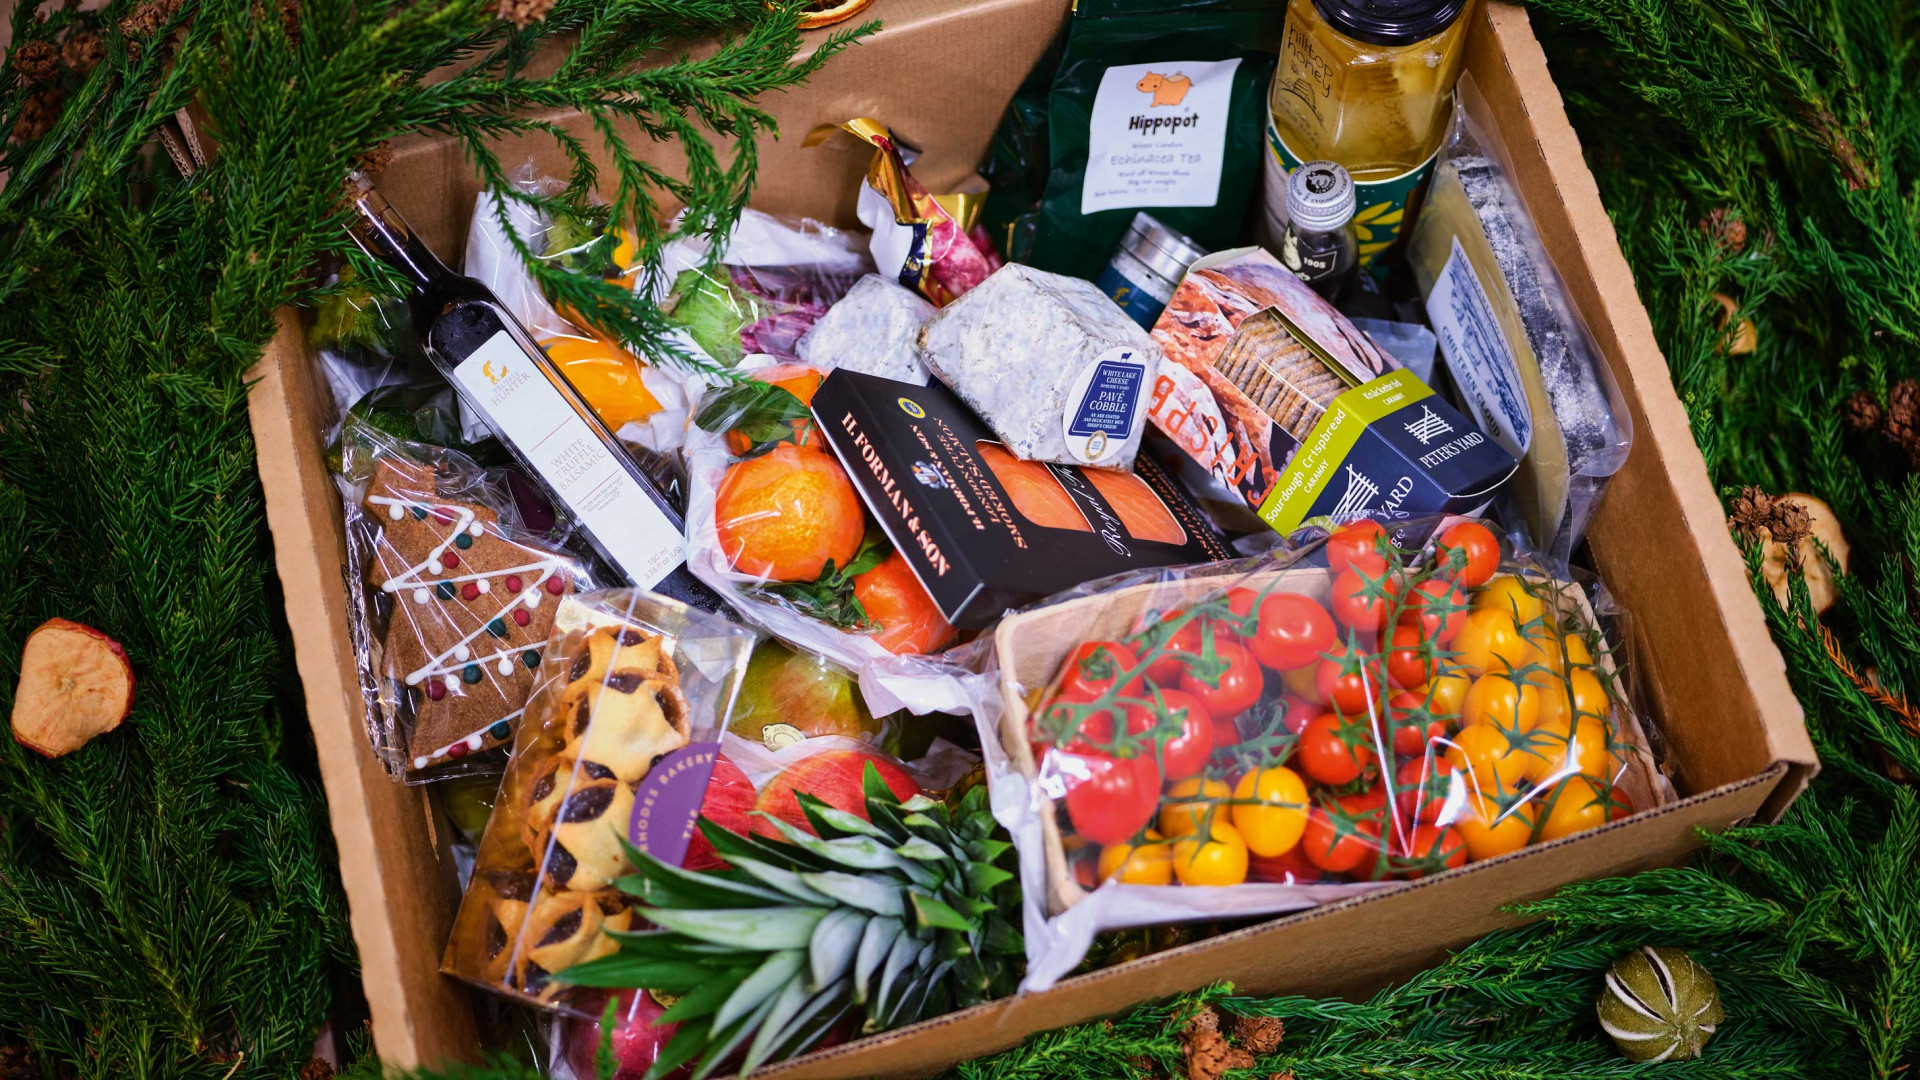 New Covent Garden Market food boxes